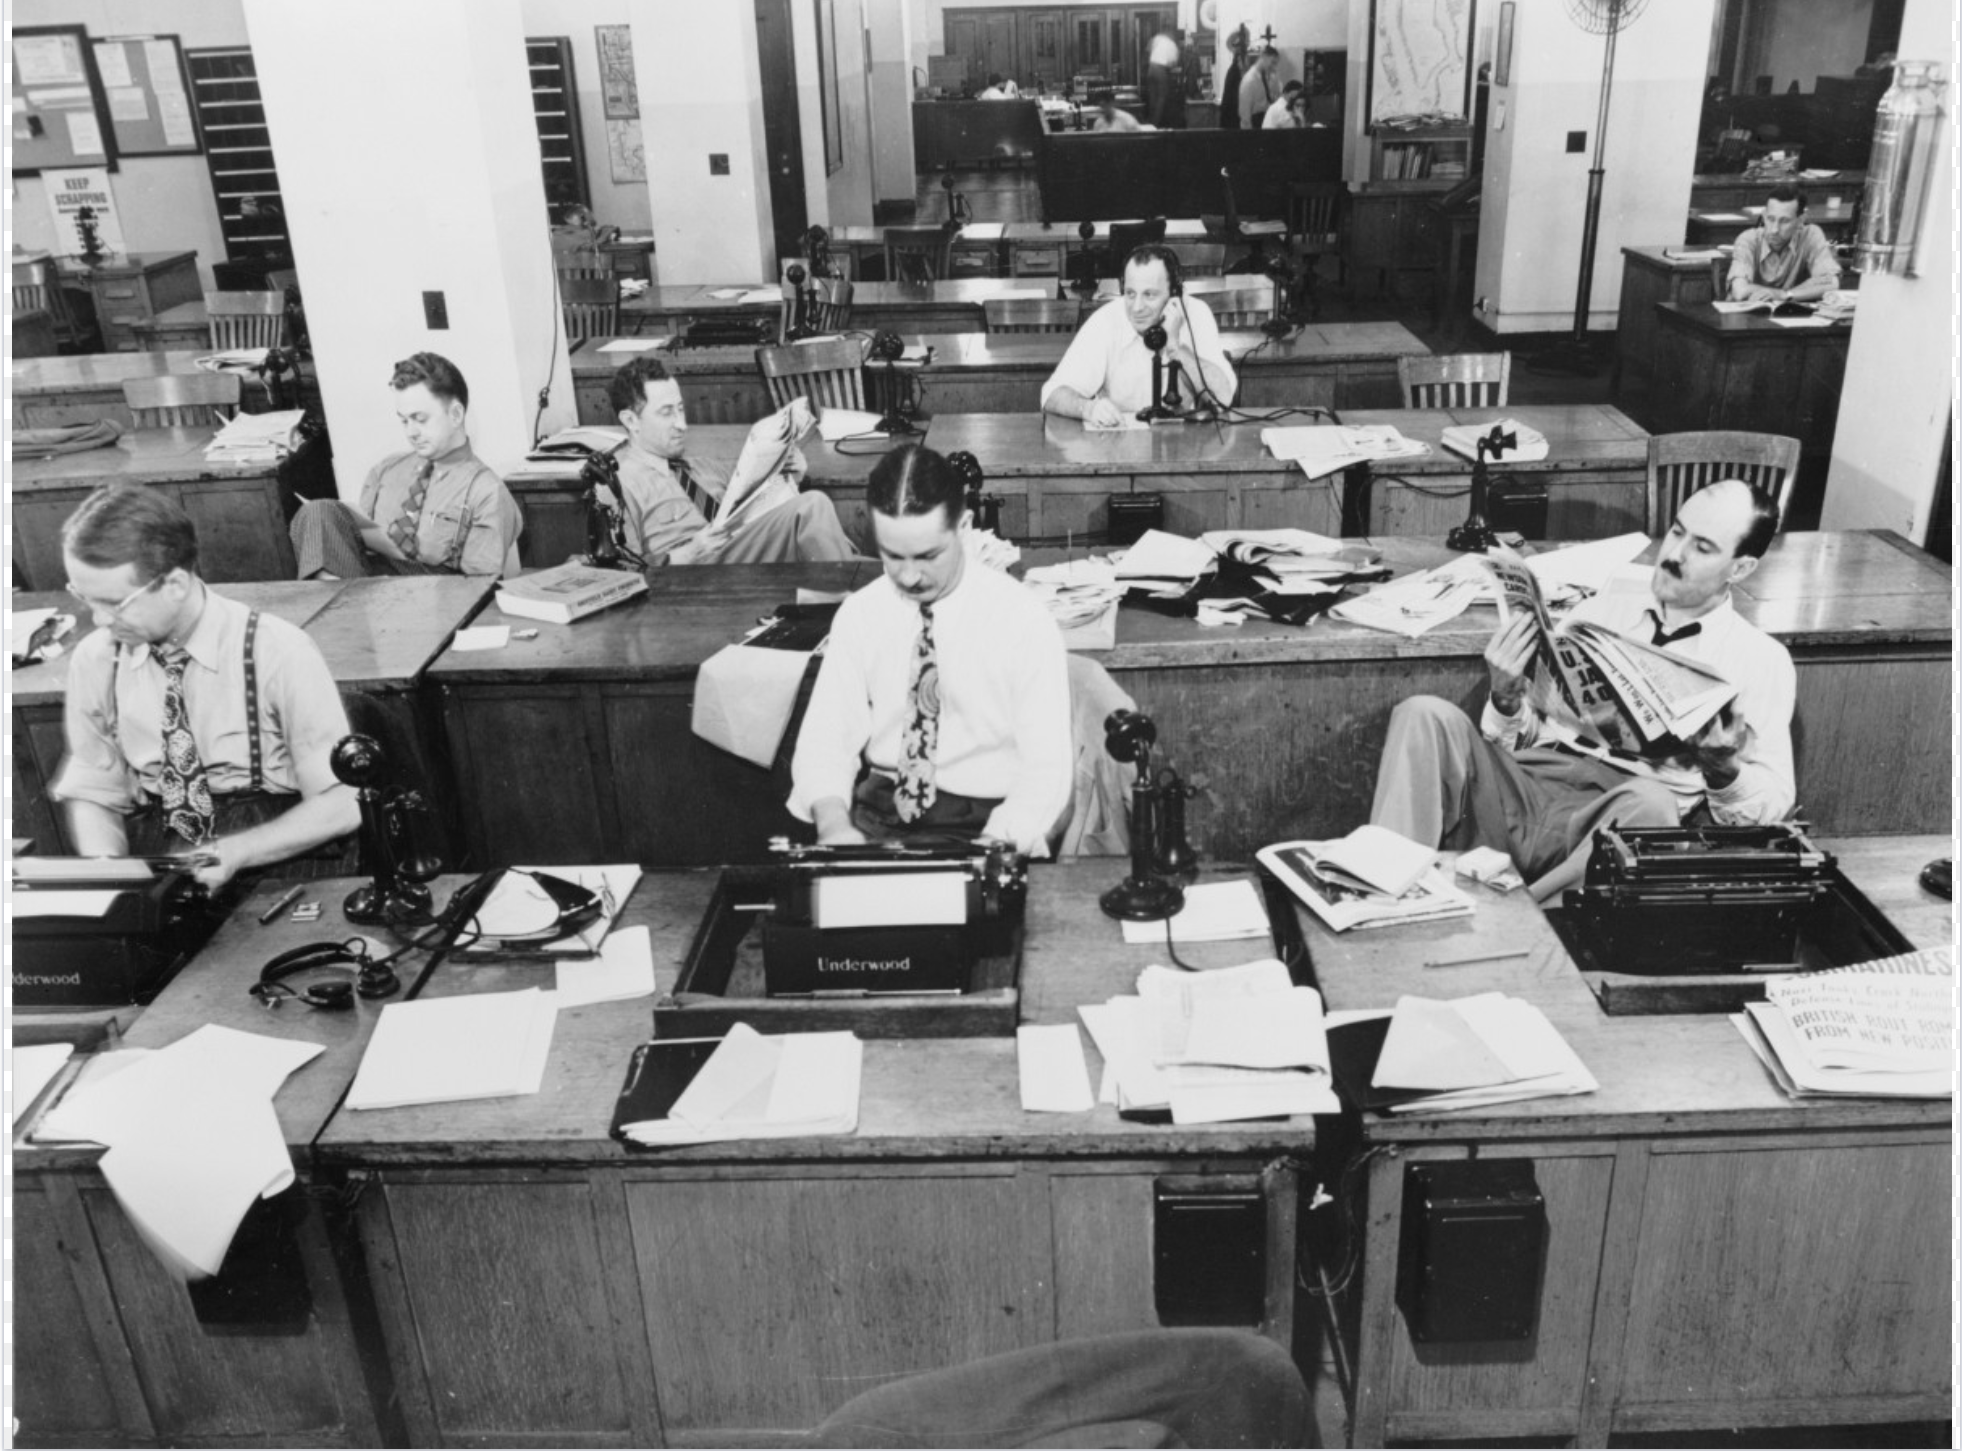 retro shot of journalists in a newspaper office